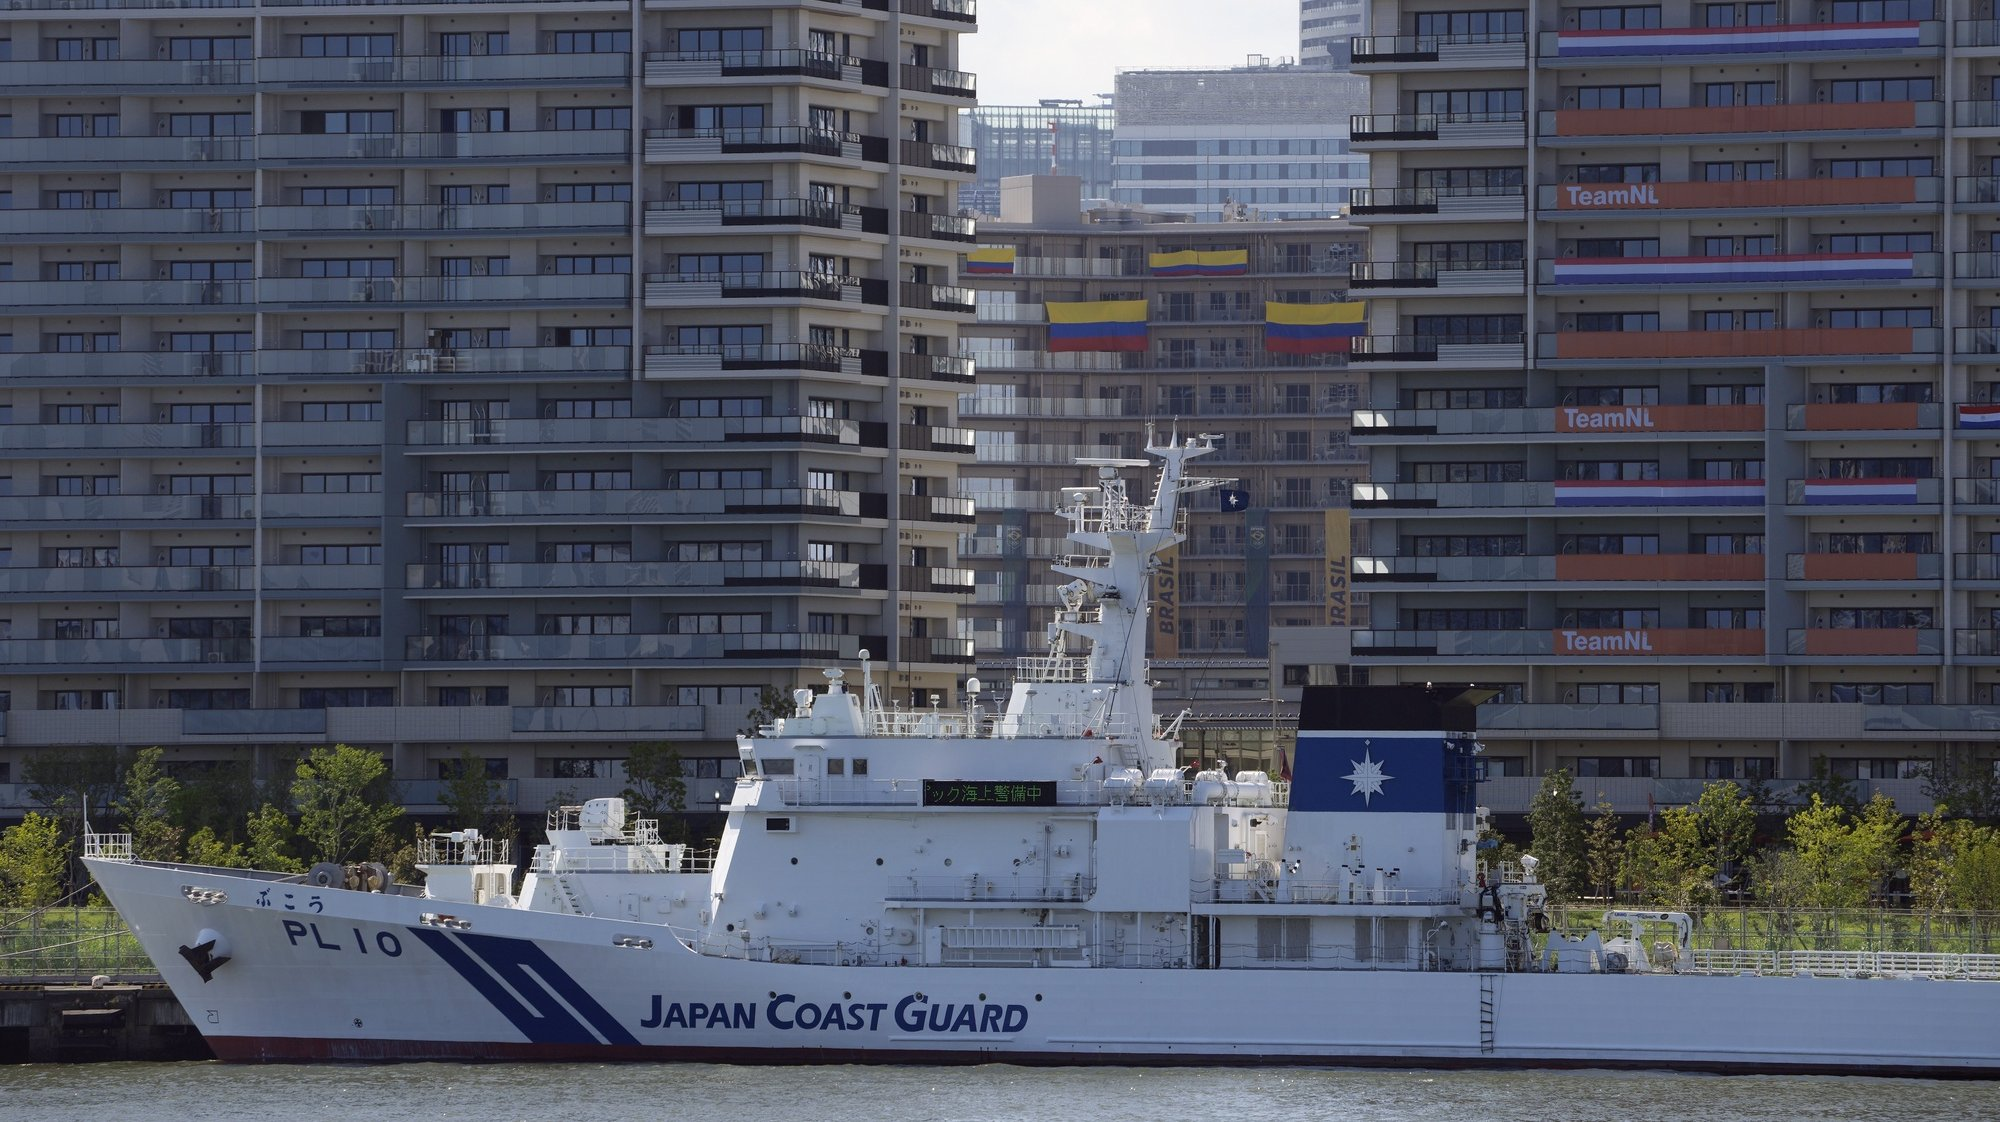 epa09349799 A Japan coast guard vessel berth before the Olympic Village buildings in Tokyo, Japan, 17 July 2021. The Tokyo Olympics organisers confirmed the first COVID-19 case in the Tokyo athletes' village less than a week before the opening of the Games.  EPA/FRANCK ROBICHON